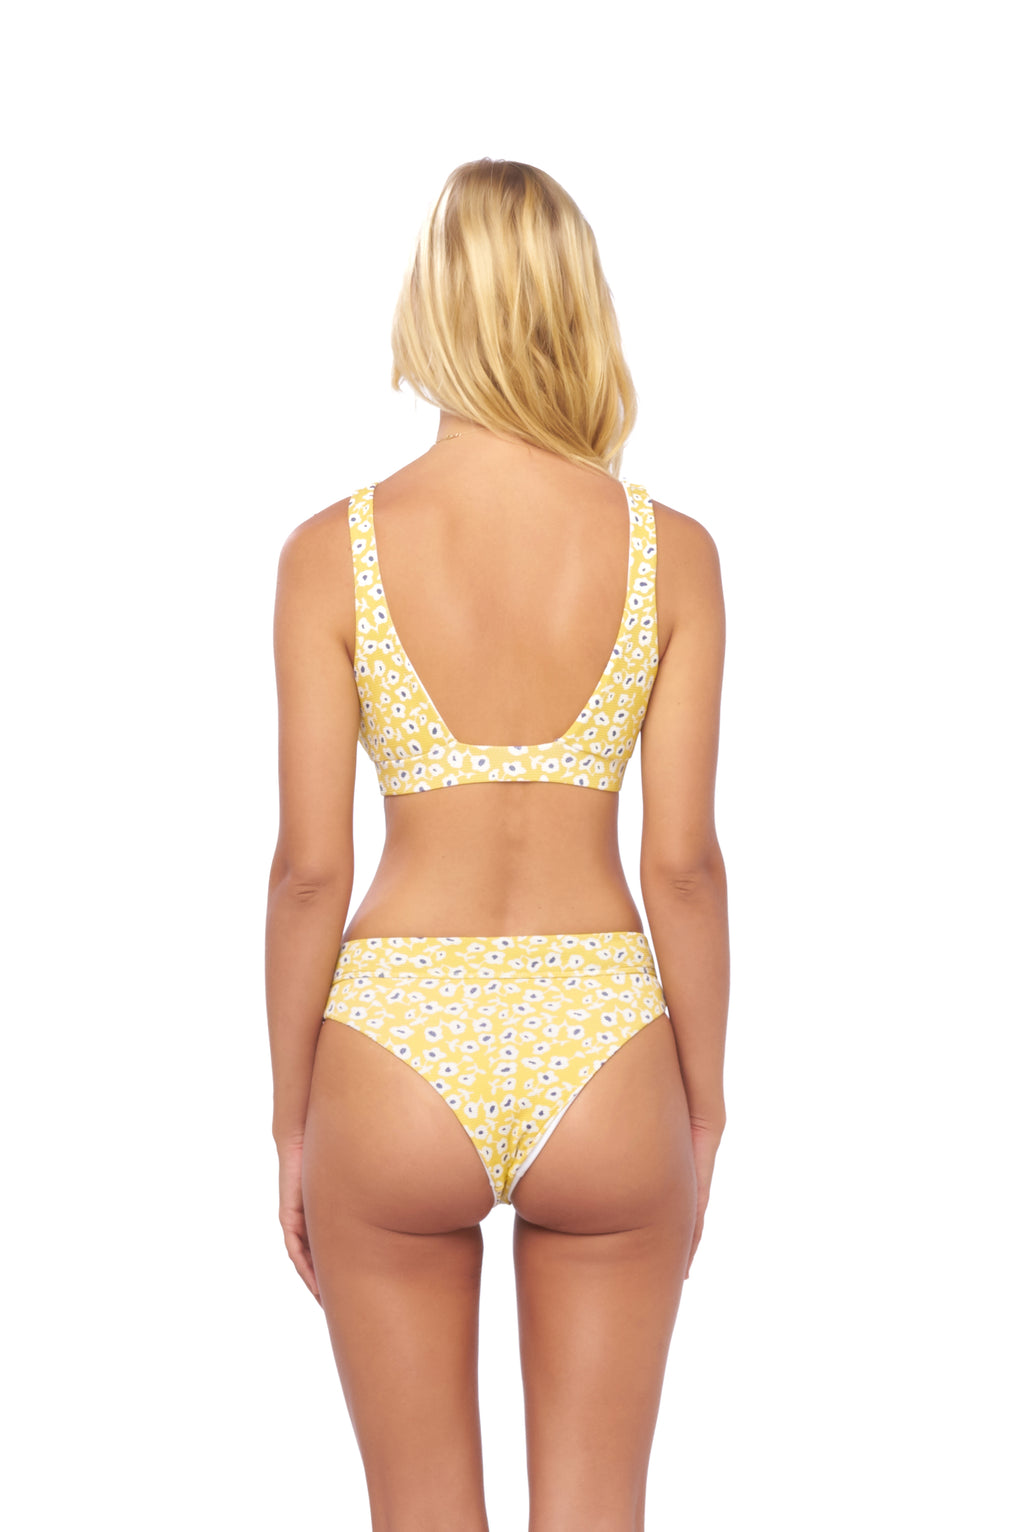 Storm Swimwear - Super Paradise - Super Style High waist brief in Sunflower